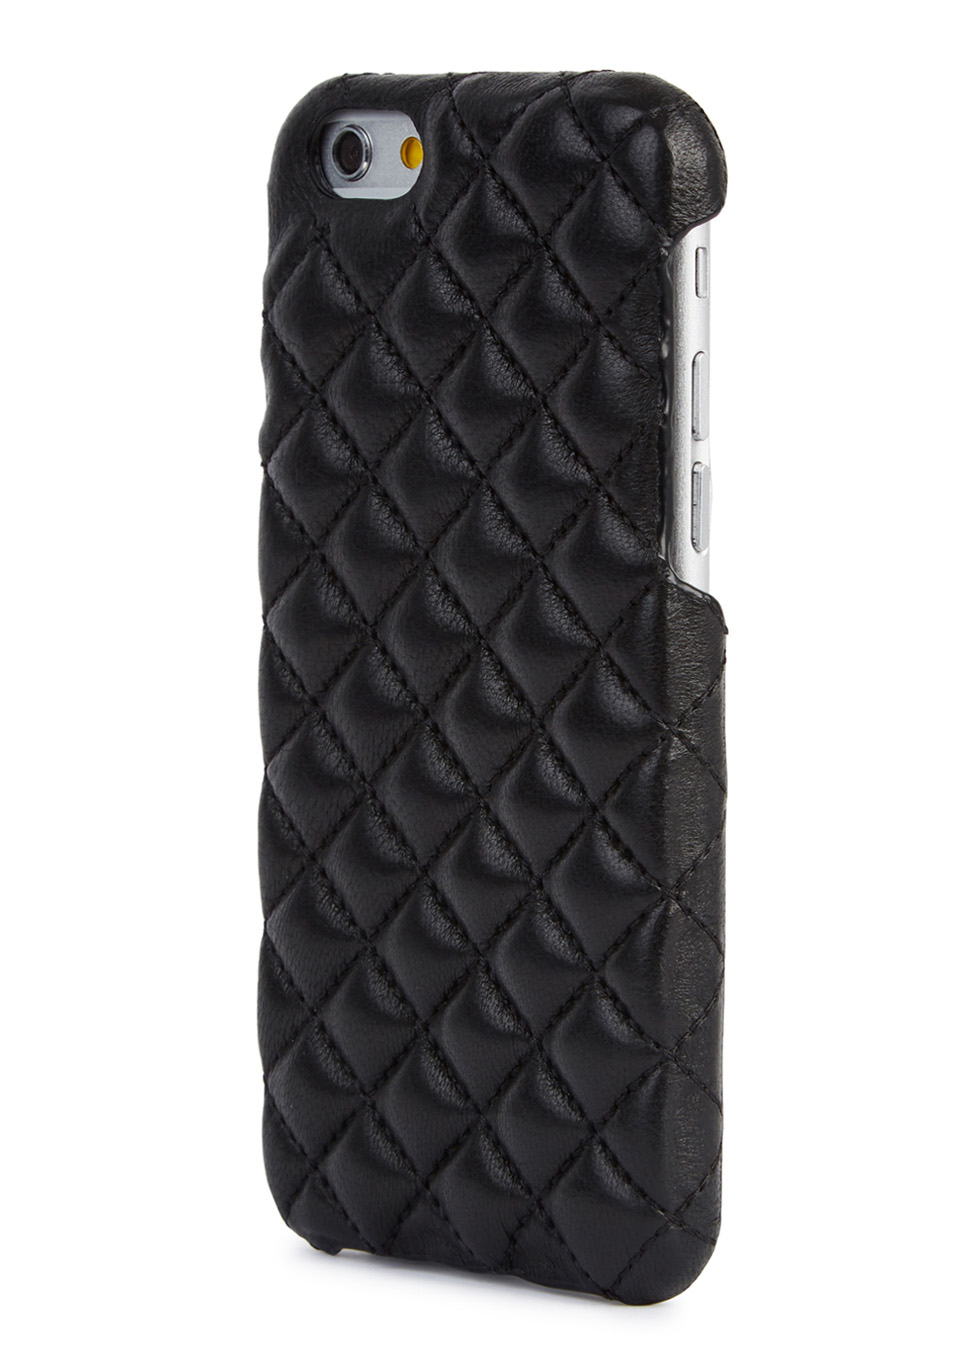 Black quilted leather iPhone 6/6S case - The Case Factory